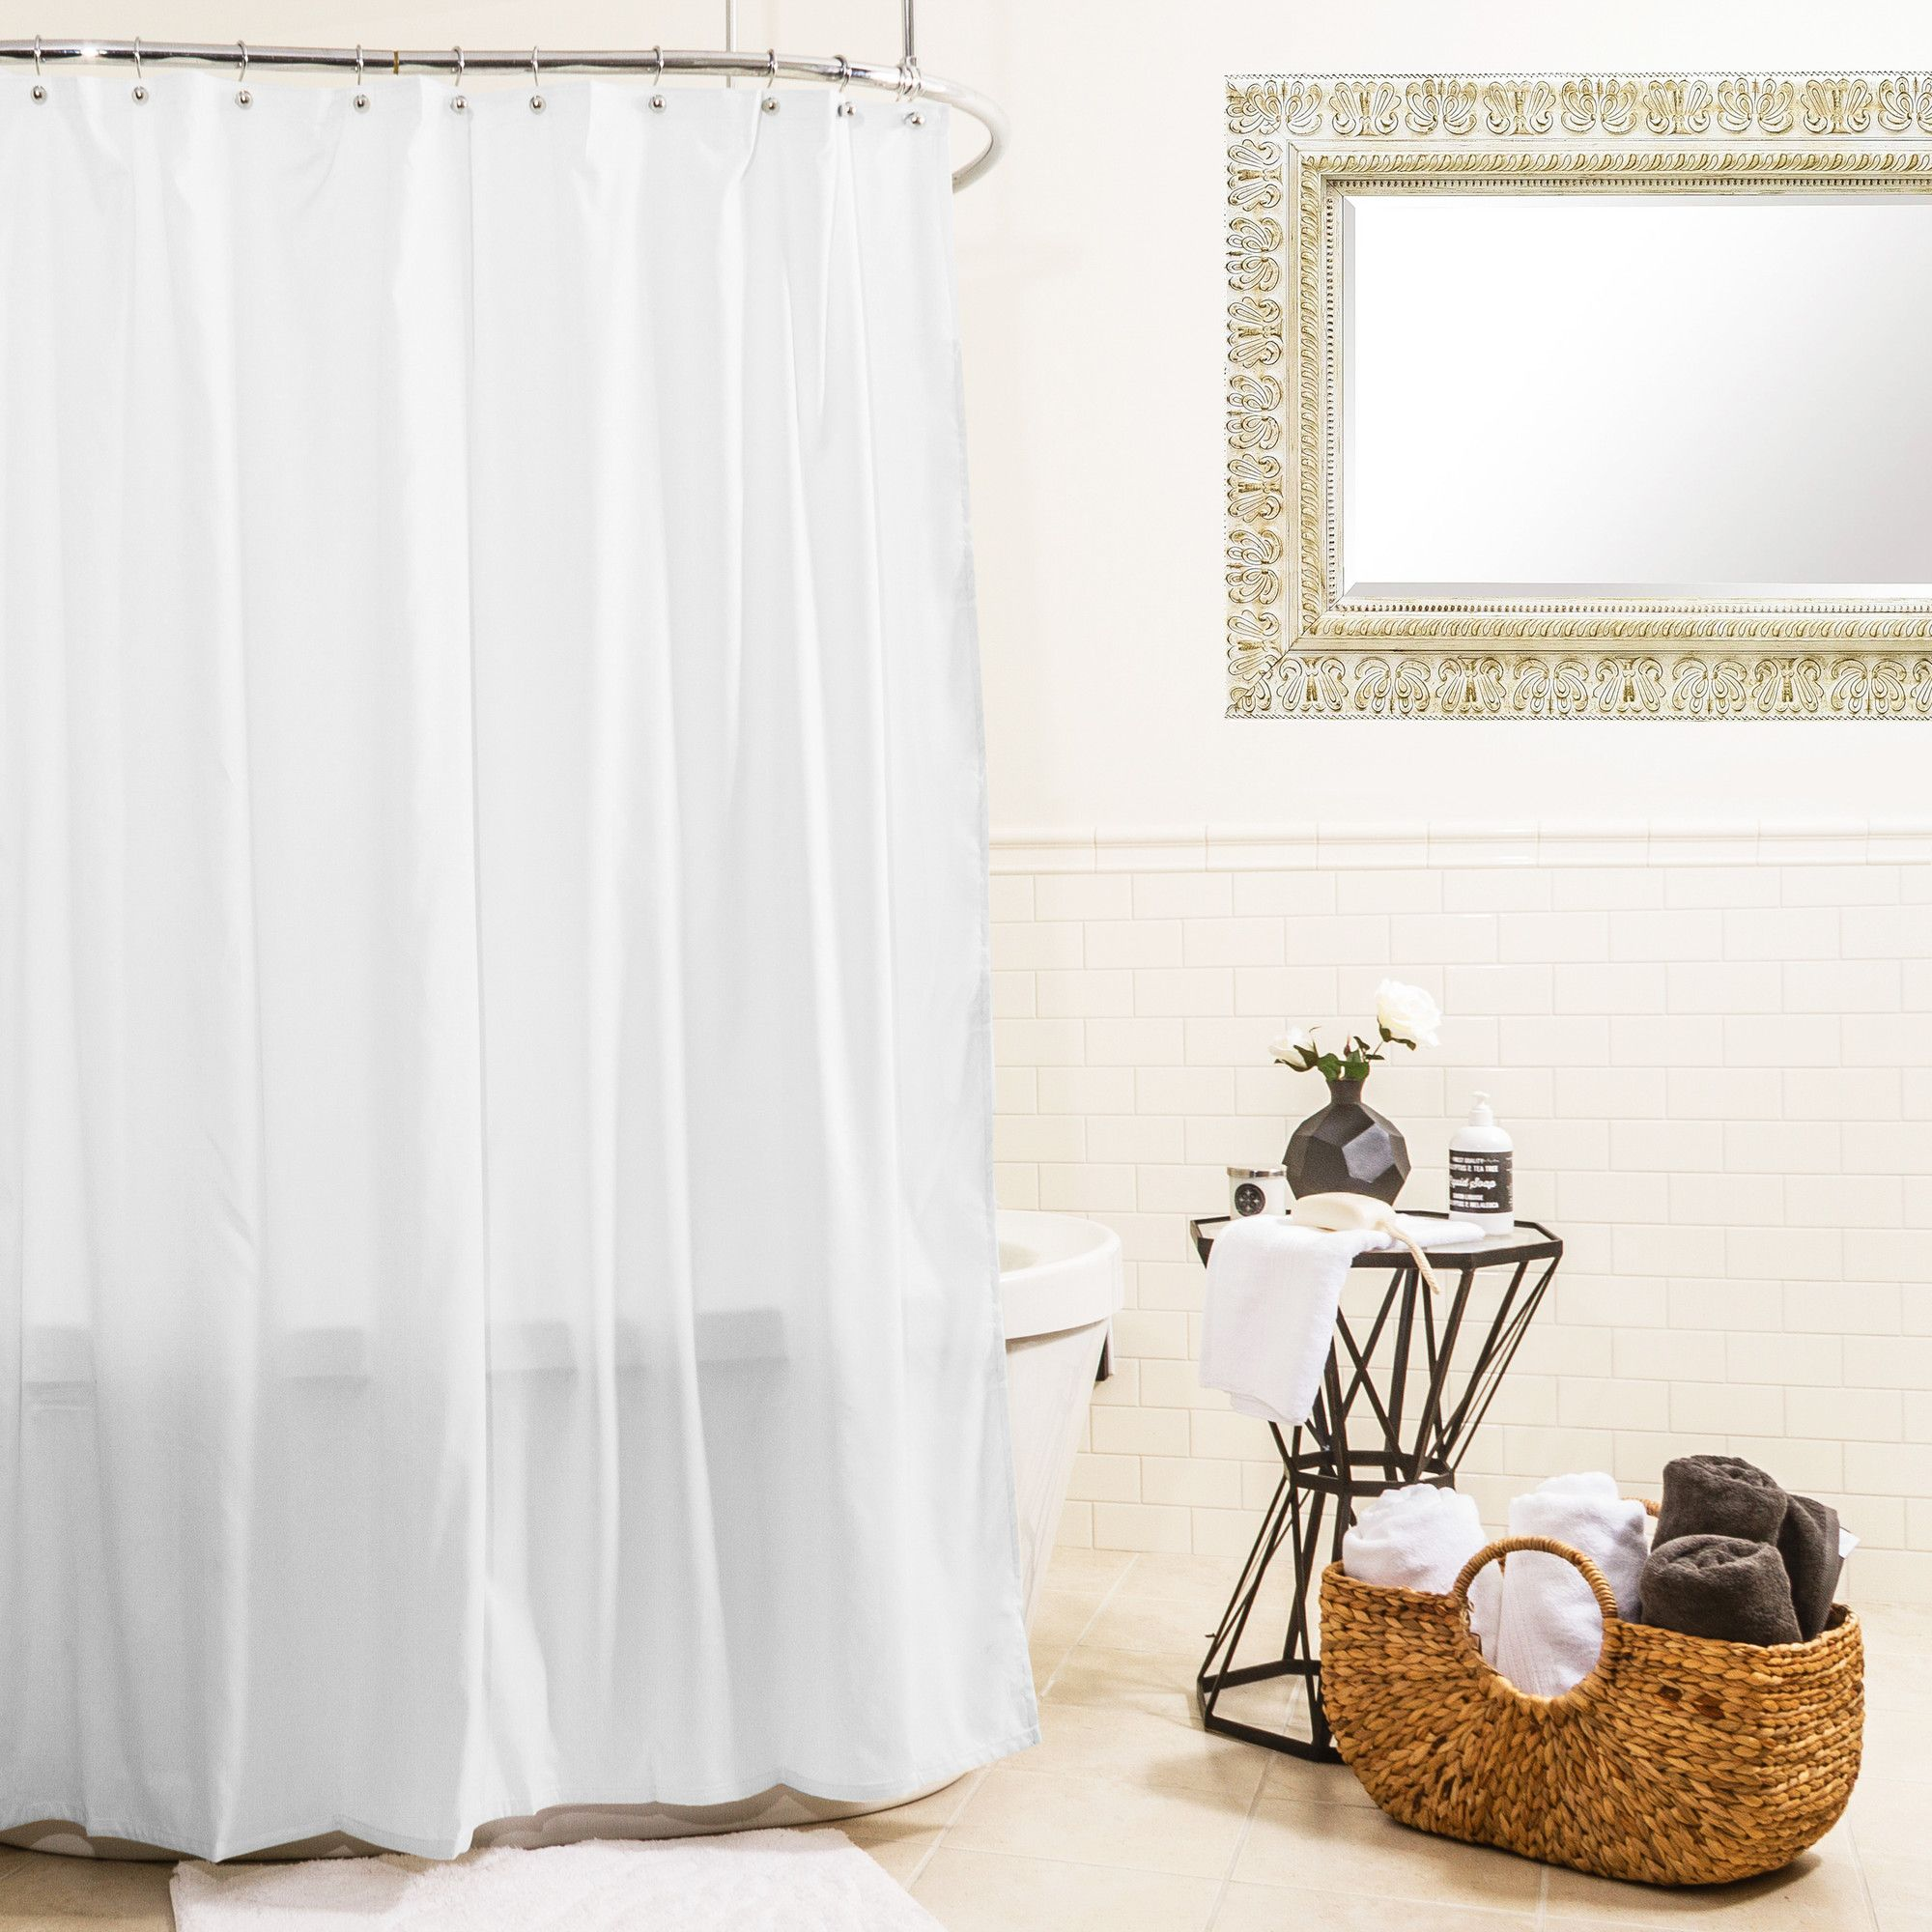 Hydro Microfiber Shower Curtain | Products | Pinterest | Products